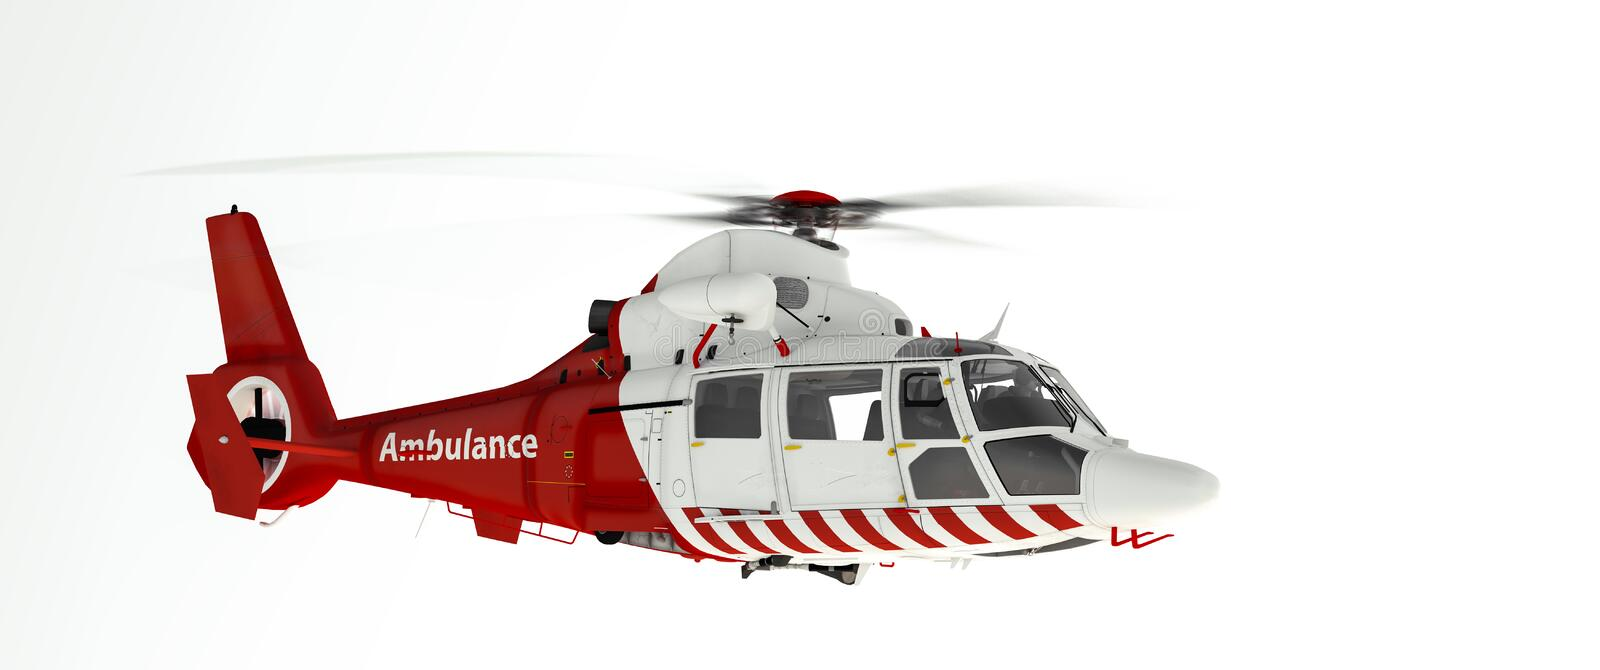 Rescue helicopter royalty free illustration